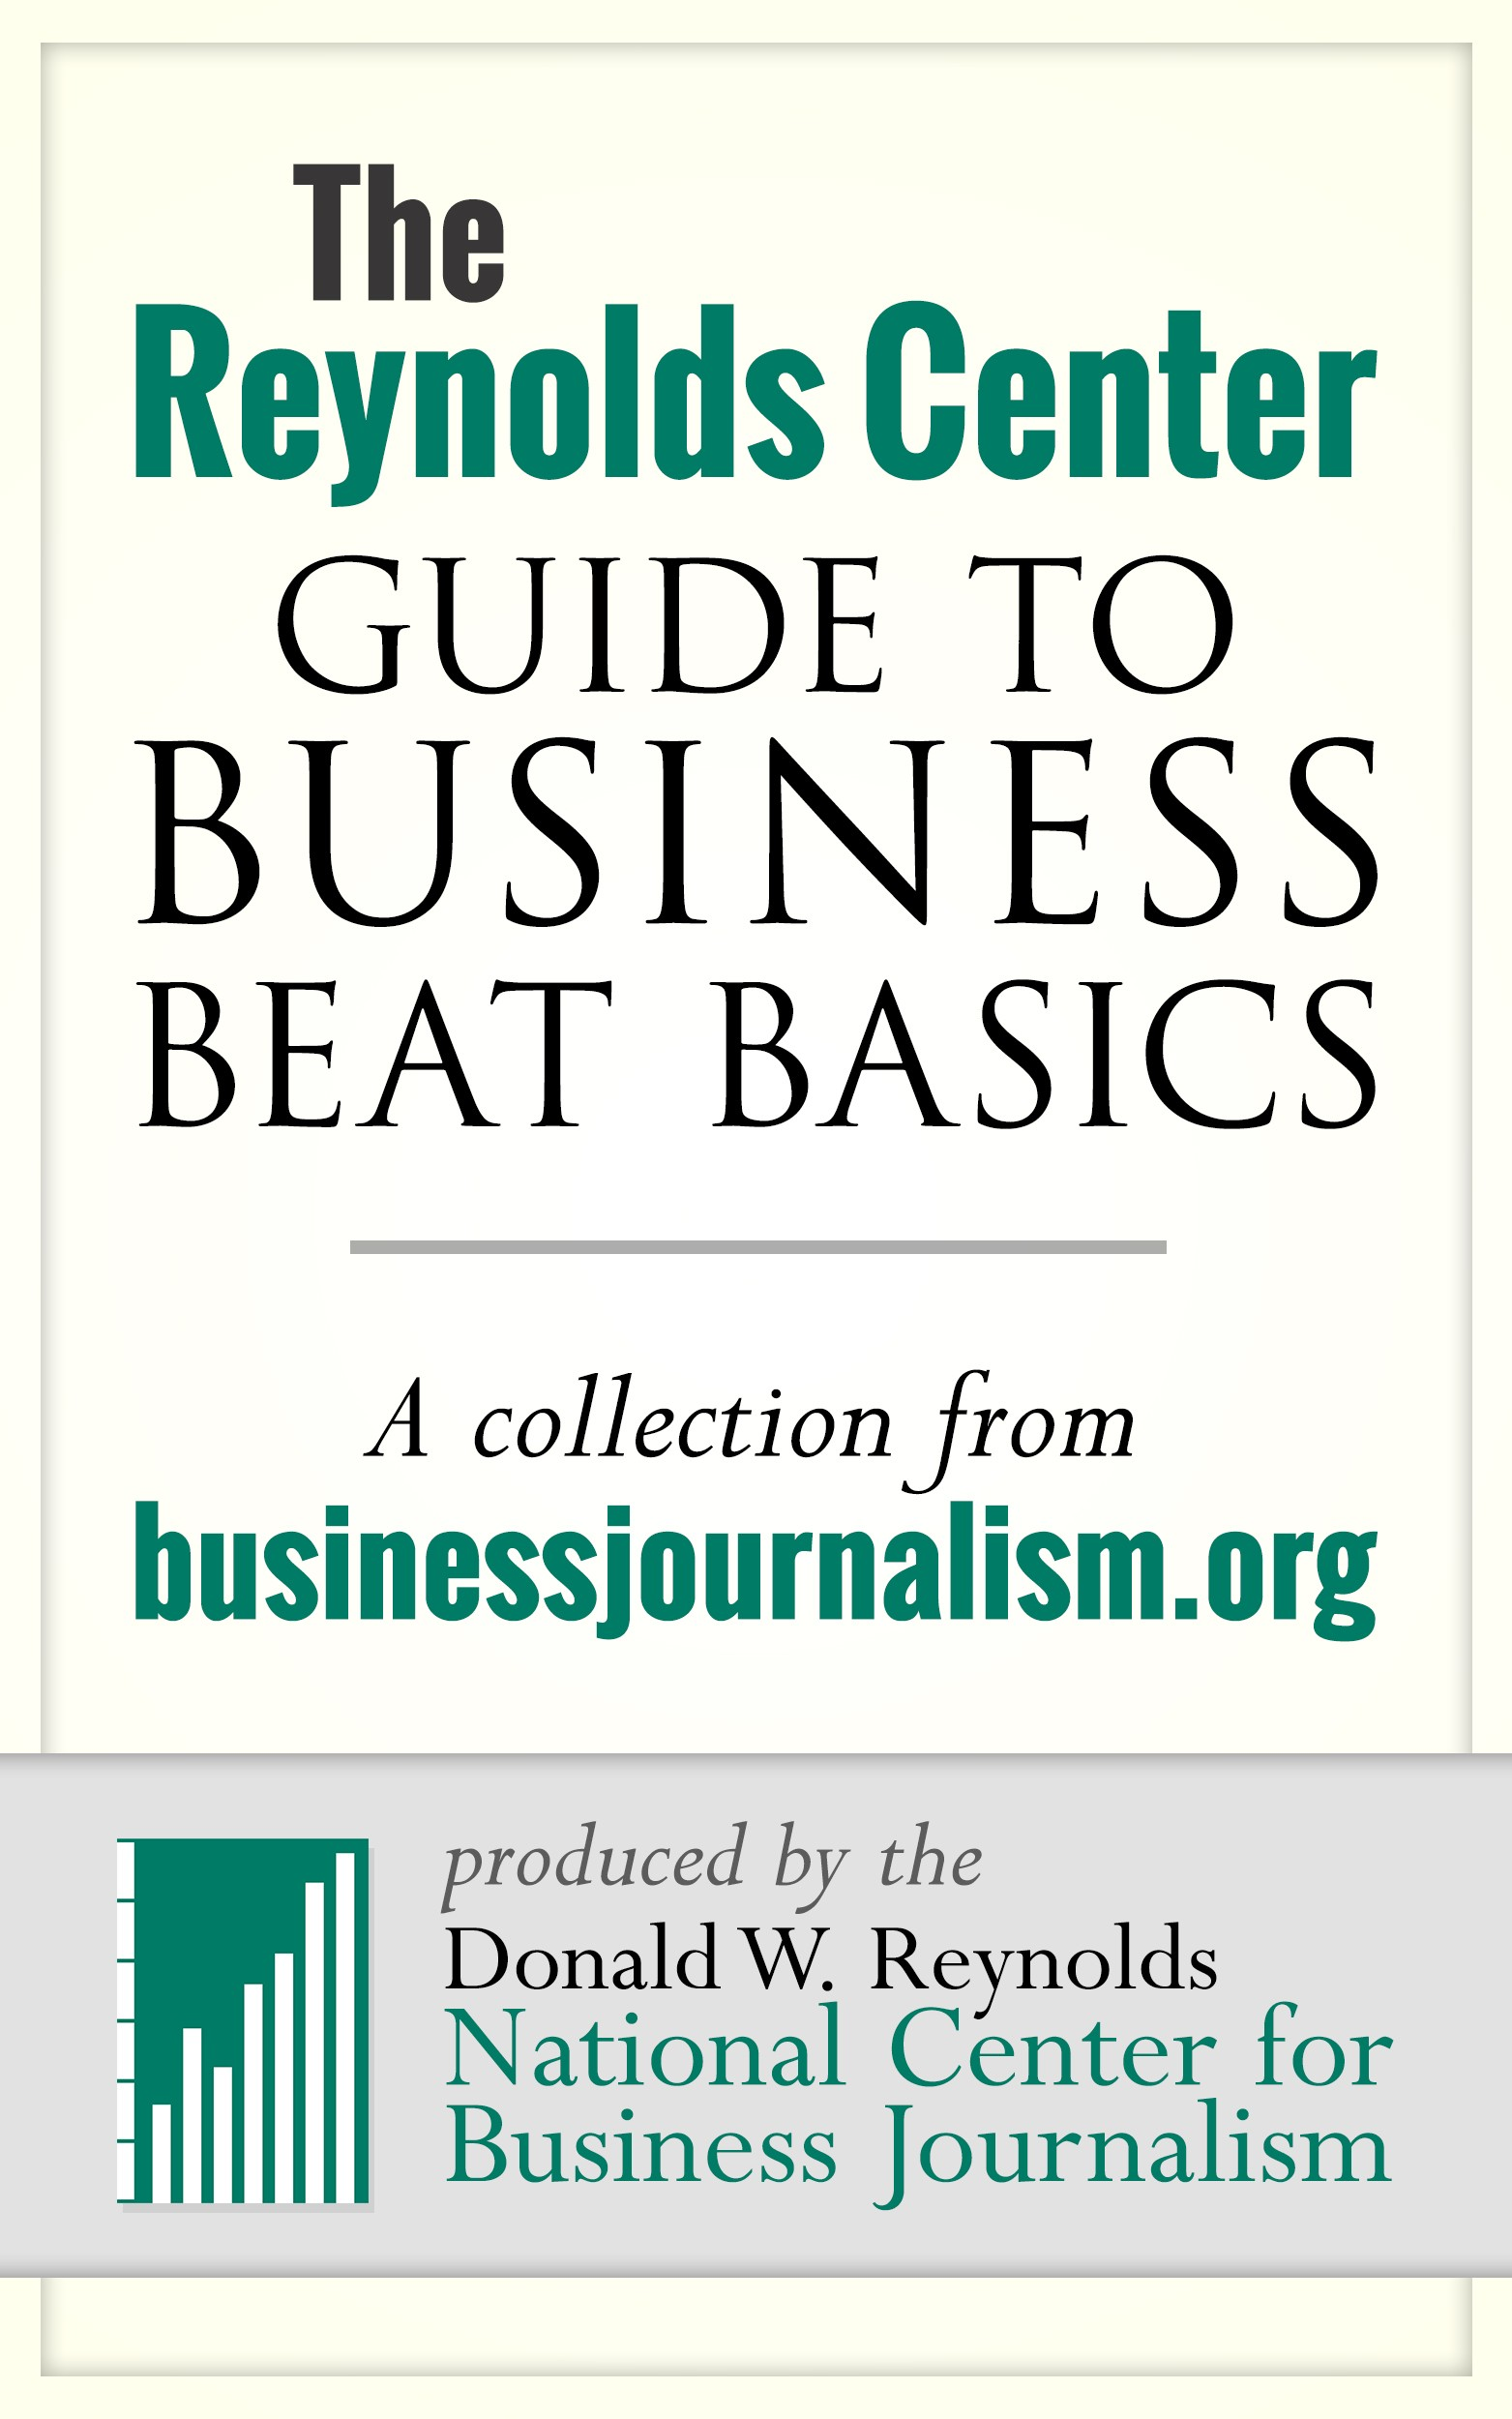 The Reynolds Center Guide to Business Beat Basics Ebook Cover